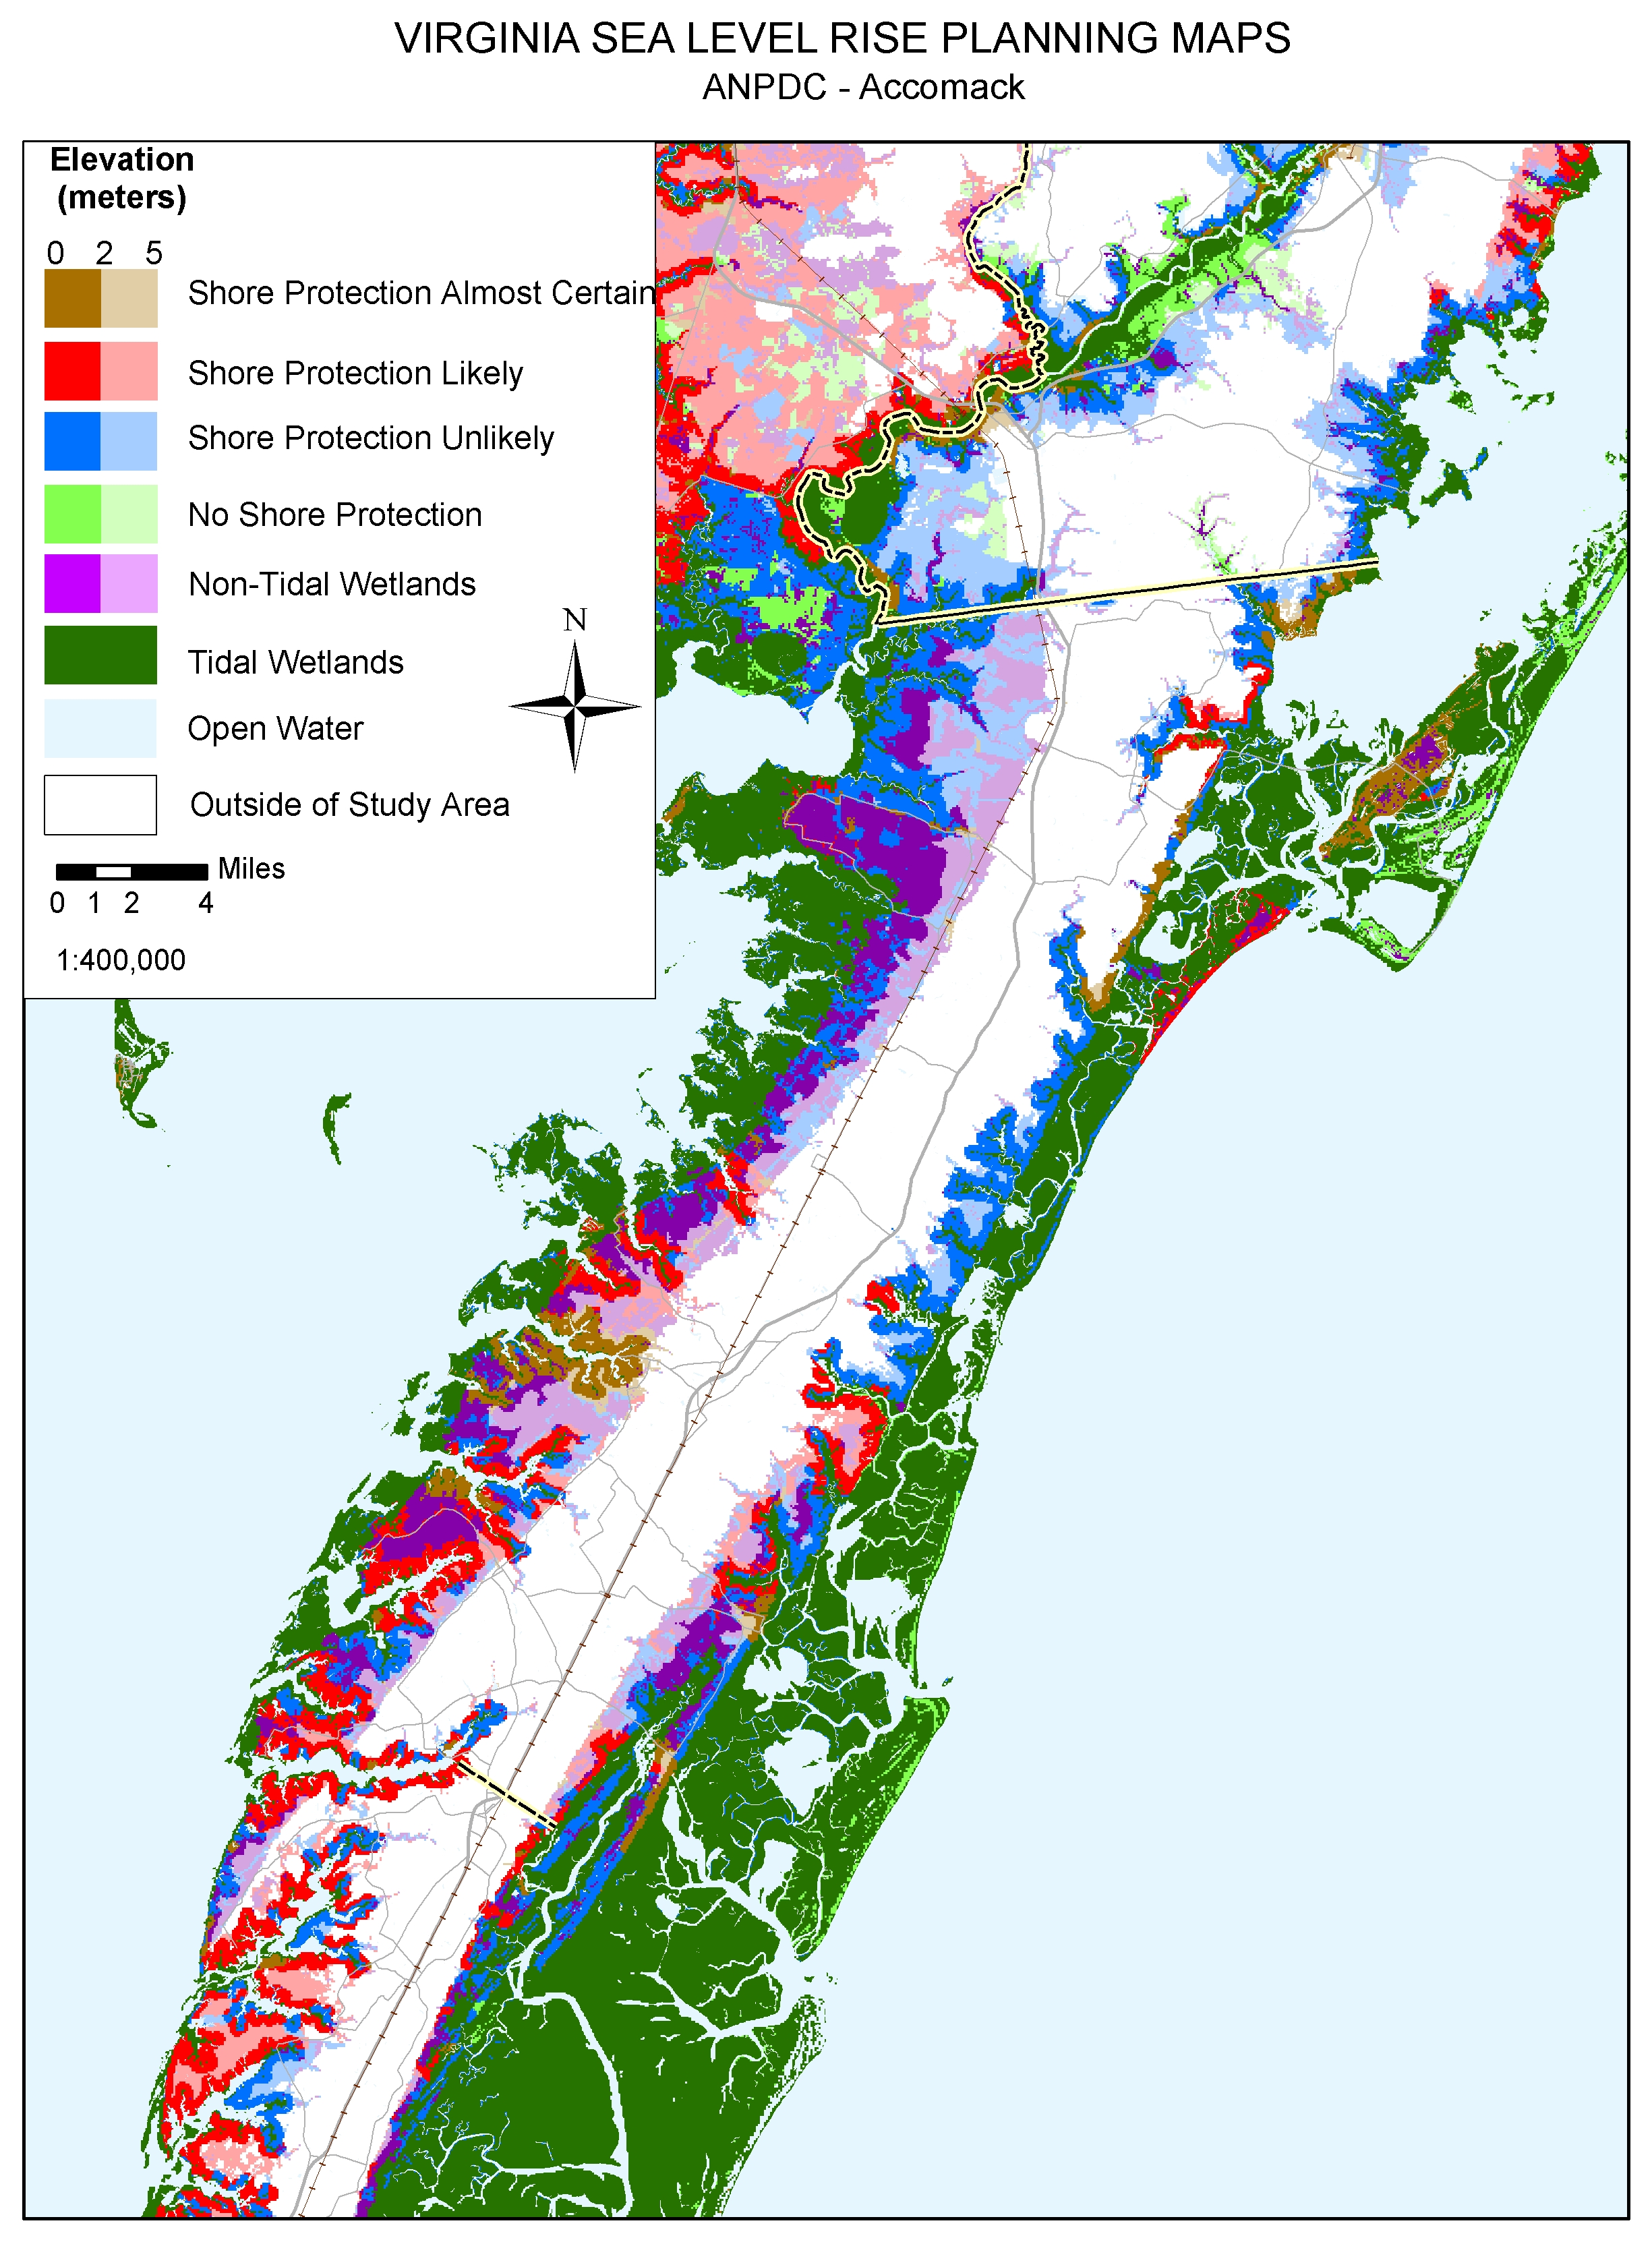 Tangier Island Virginia Map.Sea Level Rise Planning Maps